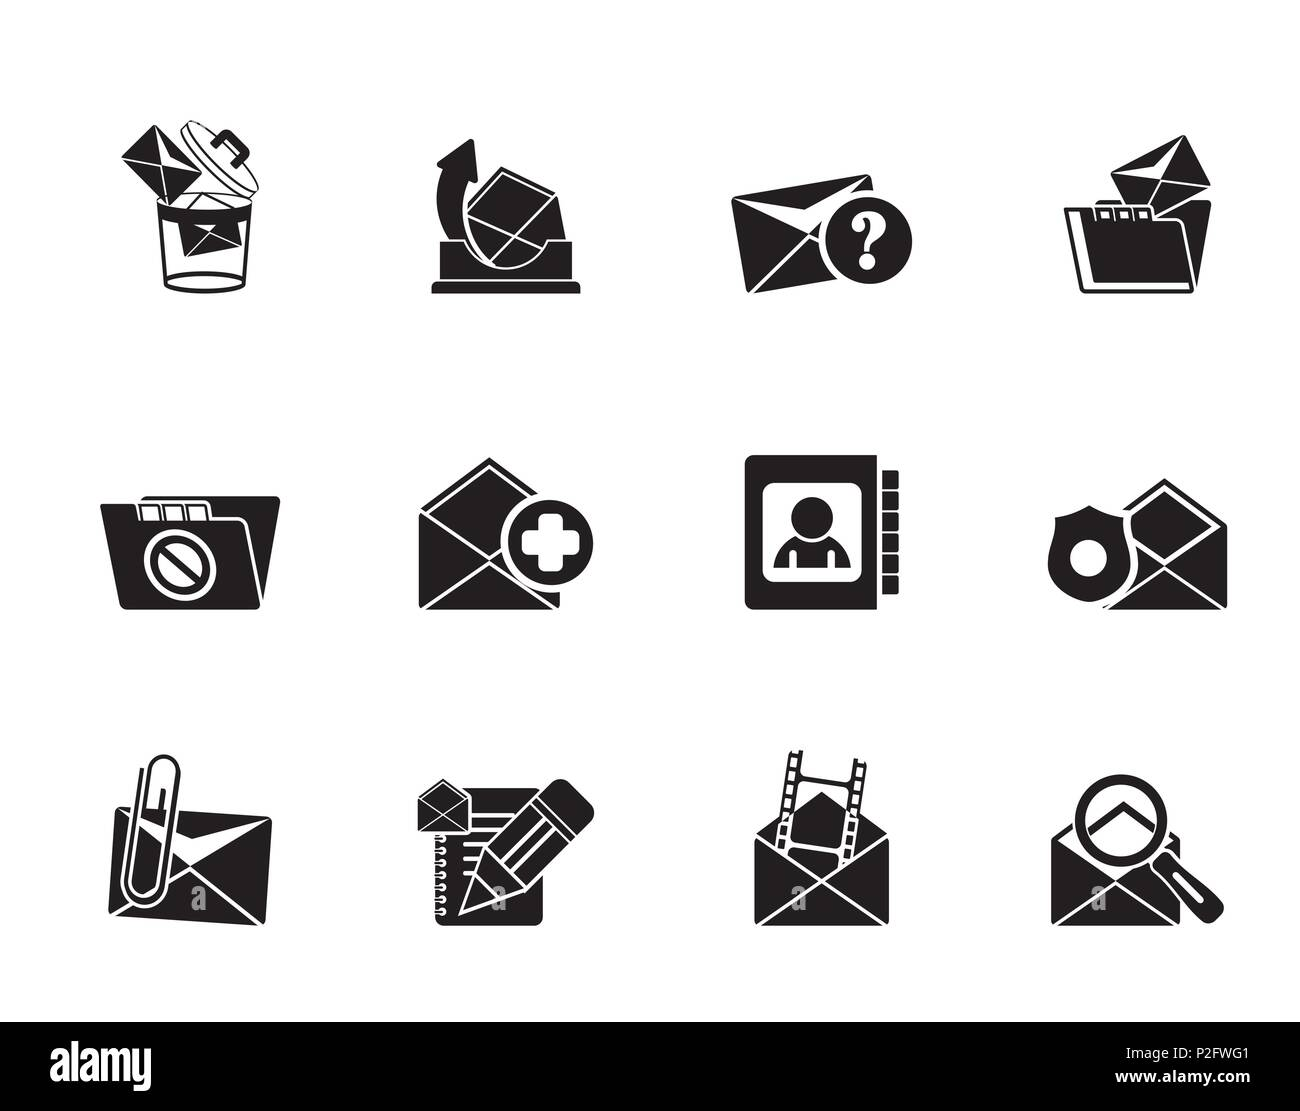 Silhouette E-mail and Message Icons - vector icon set - Stock Image